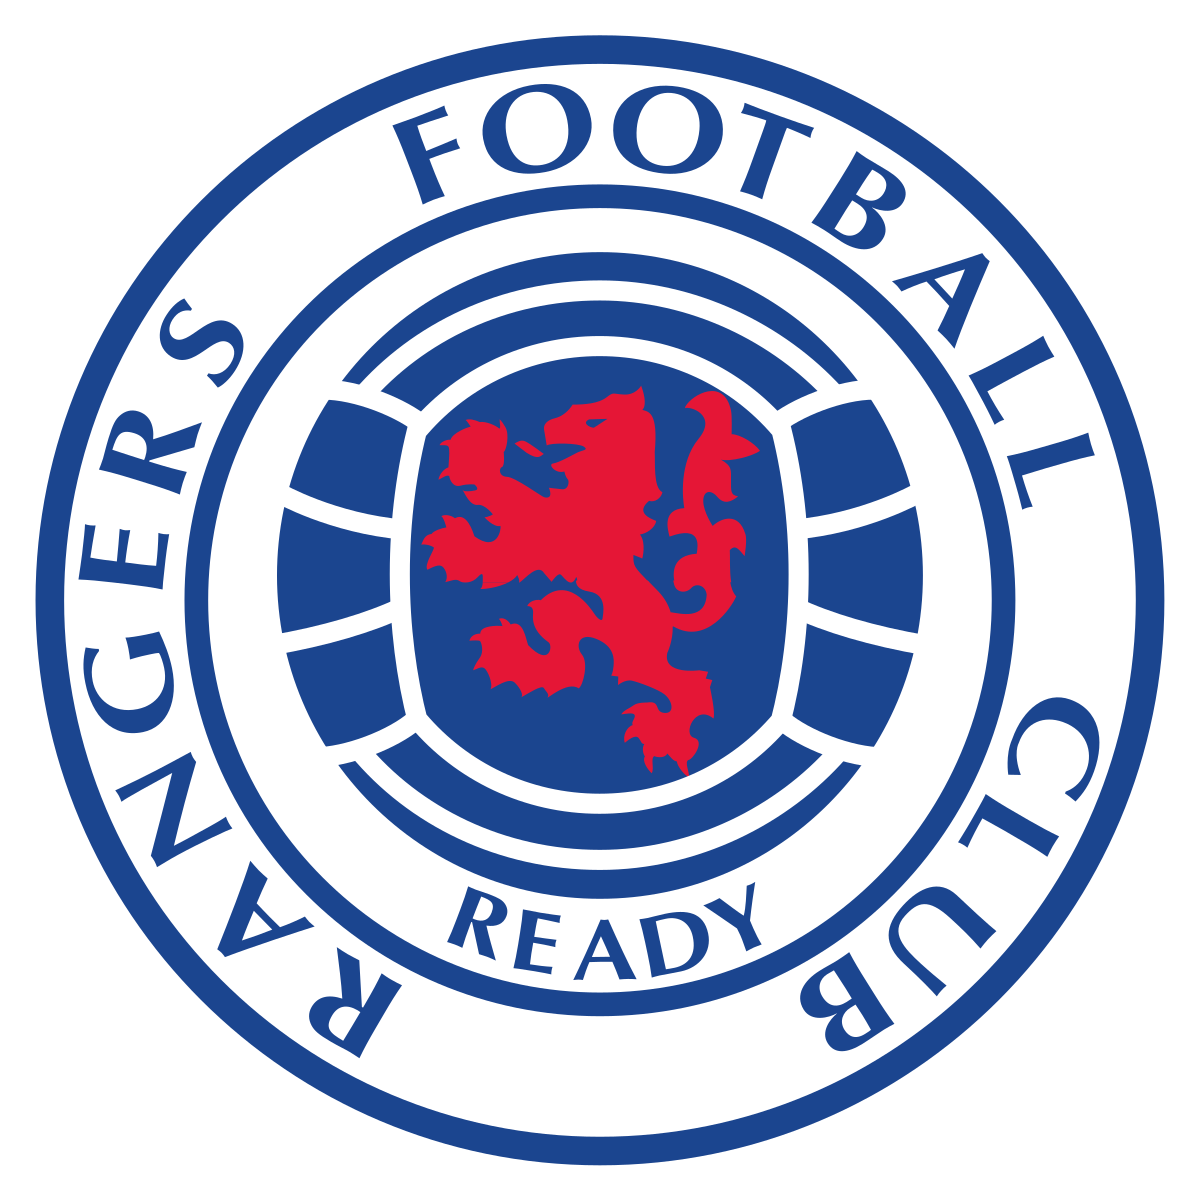 Burnley Midfielder Becomes Gerrard S First Signing As Rangers Manager Https Footiecentral Com Burnle Rangers Football Glasgow Rangers Football Football Logo